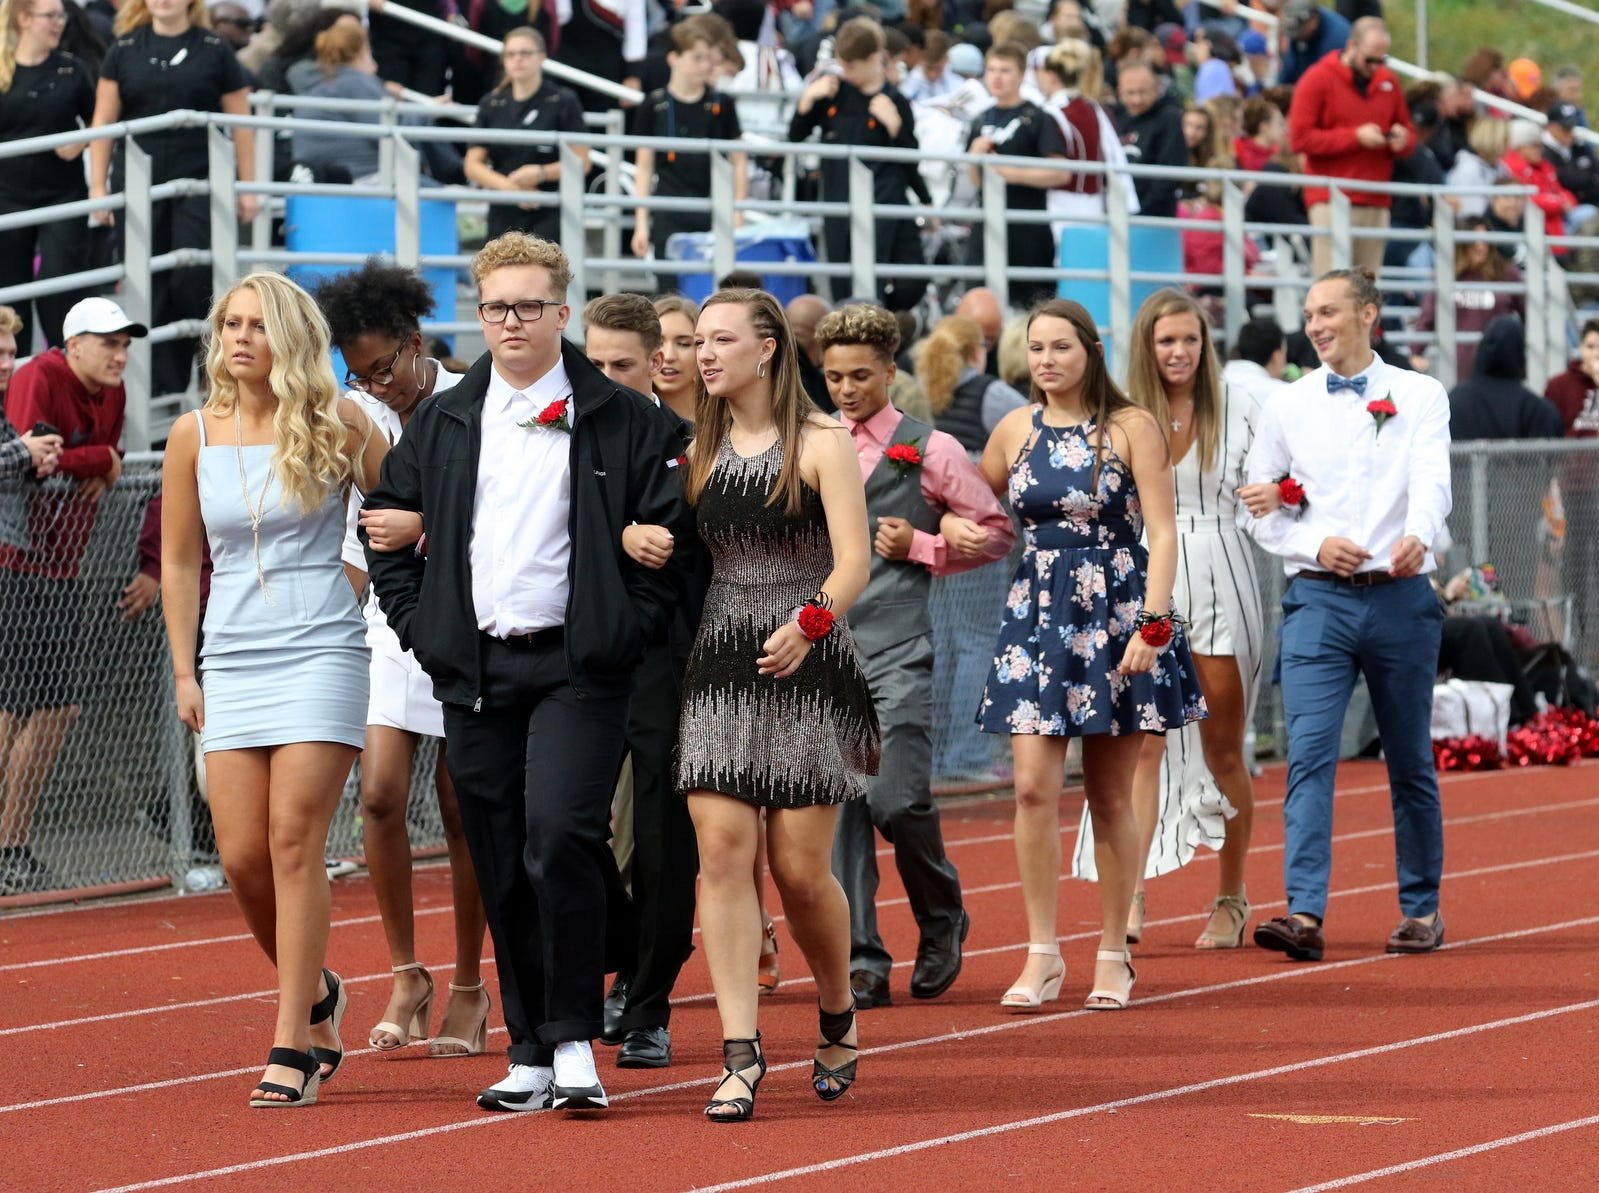 The Elmira High School homecoming court walks on the track at halftime of the football team's 30-8 victory over Syracuse Corcoran on Sept. 22, 2018 at Ernie Davis Academy.